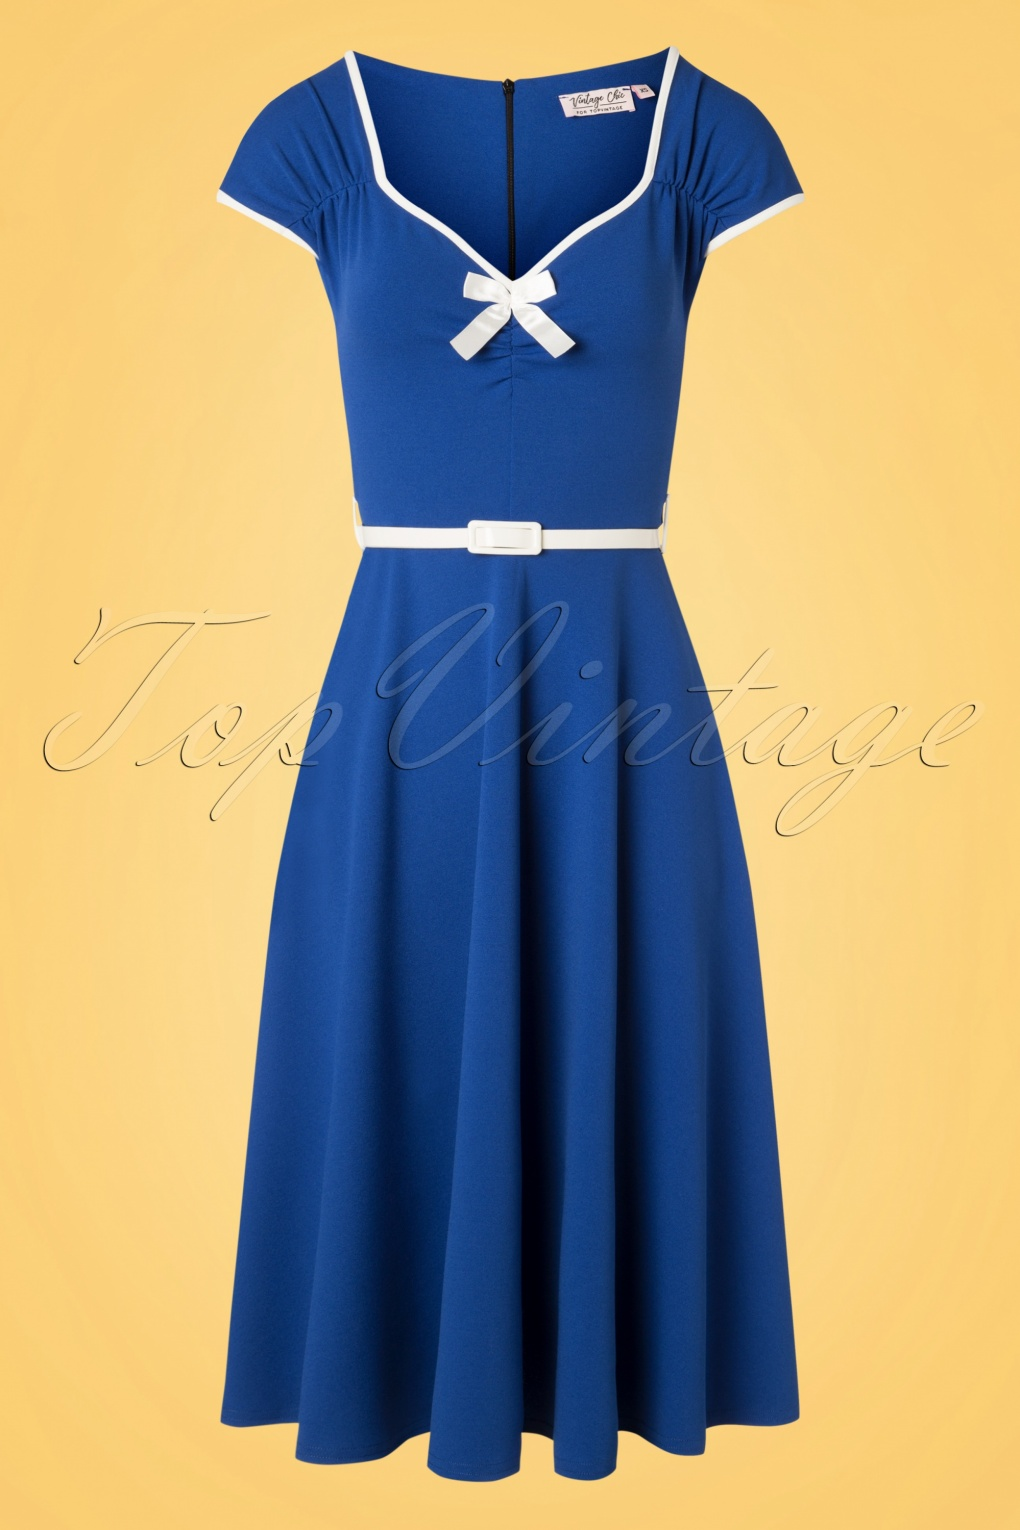 Vintage Sailor Clothes, Nautical Theme Clothing 50s Cindy Bow Swing Dress in Royal Blue £49.05 AT vintagedancer.com